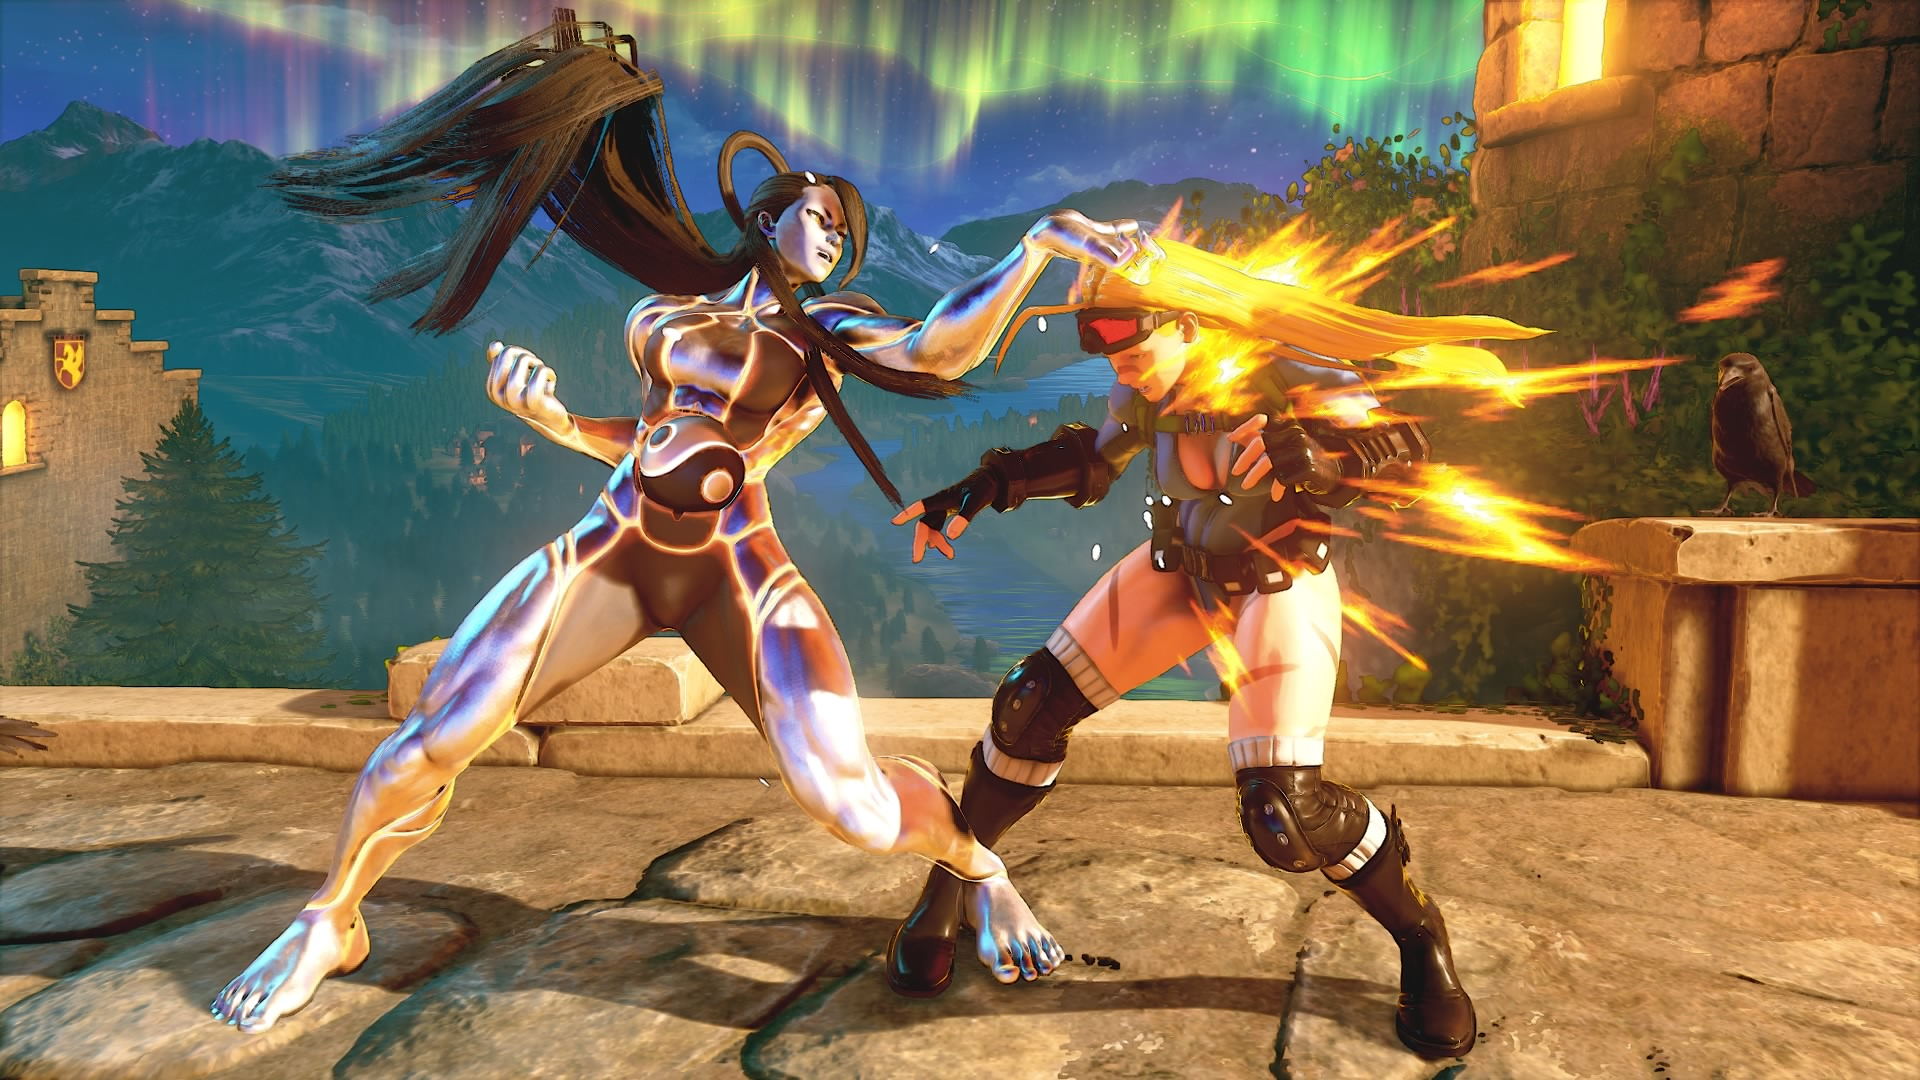 Capcom Details Street Fighter V Champion Edition Content Ahead Of